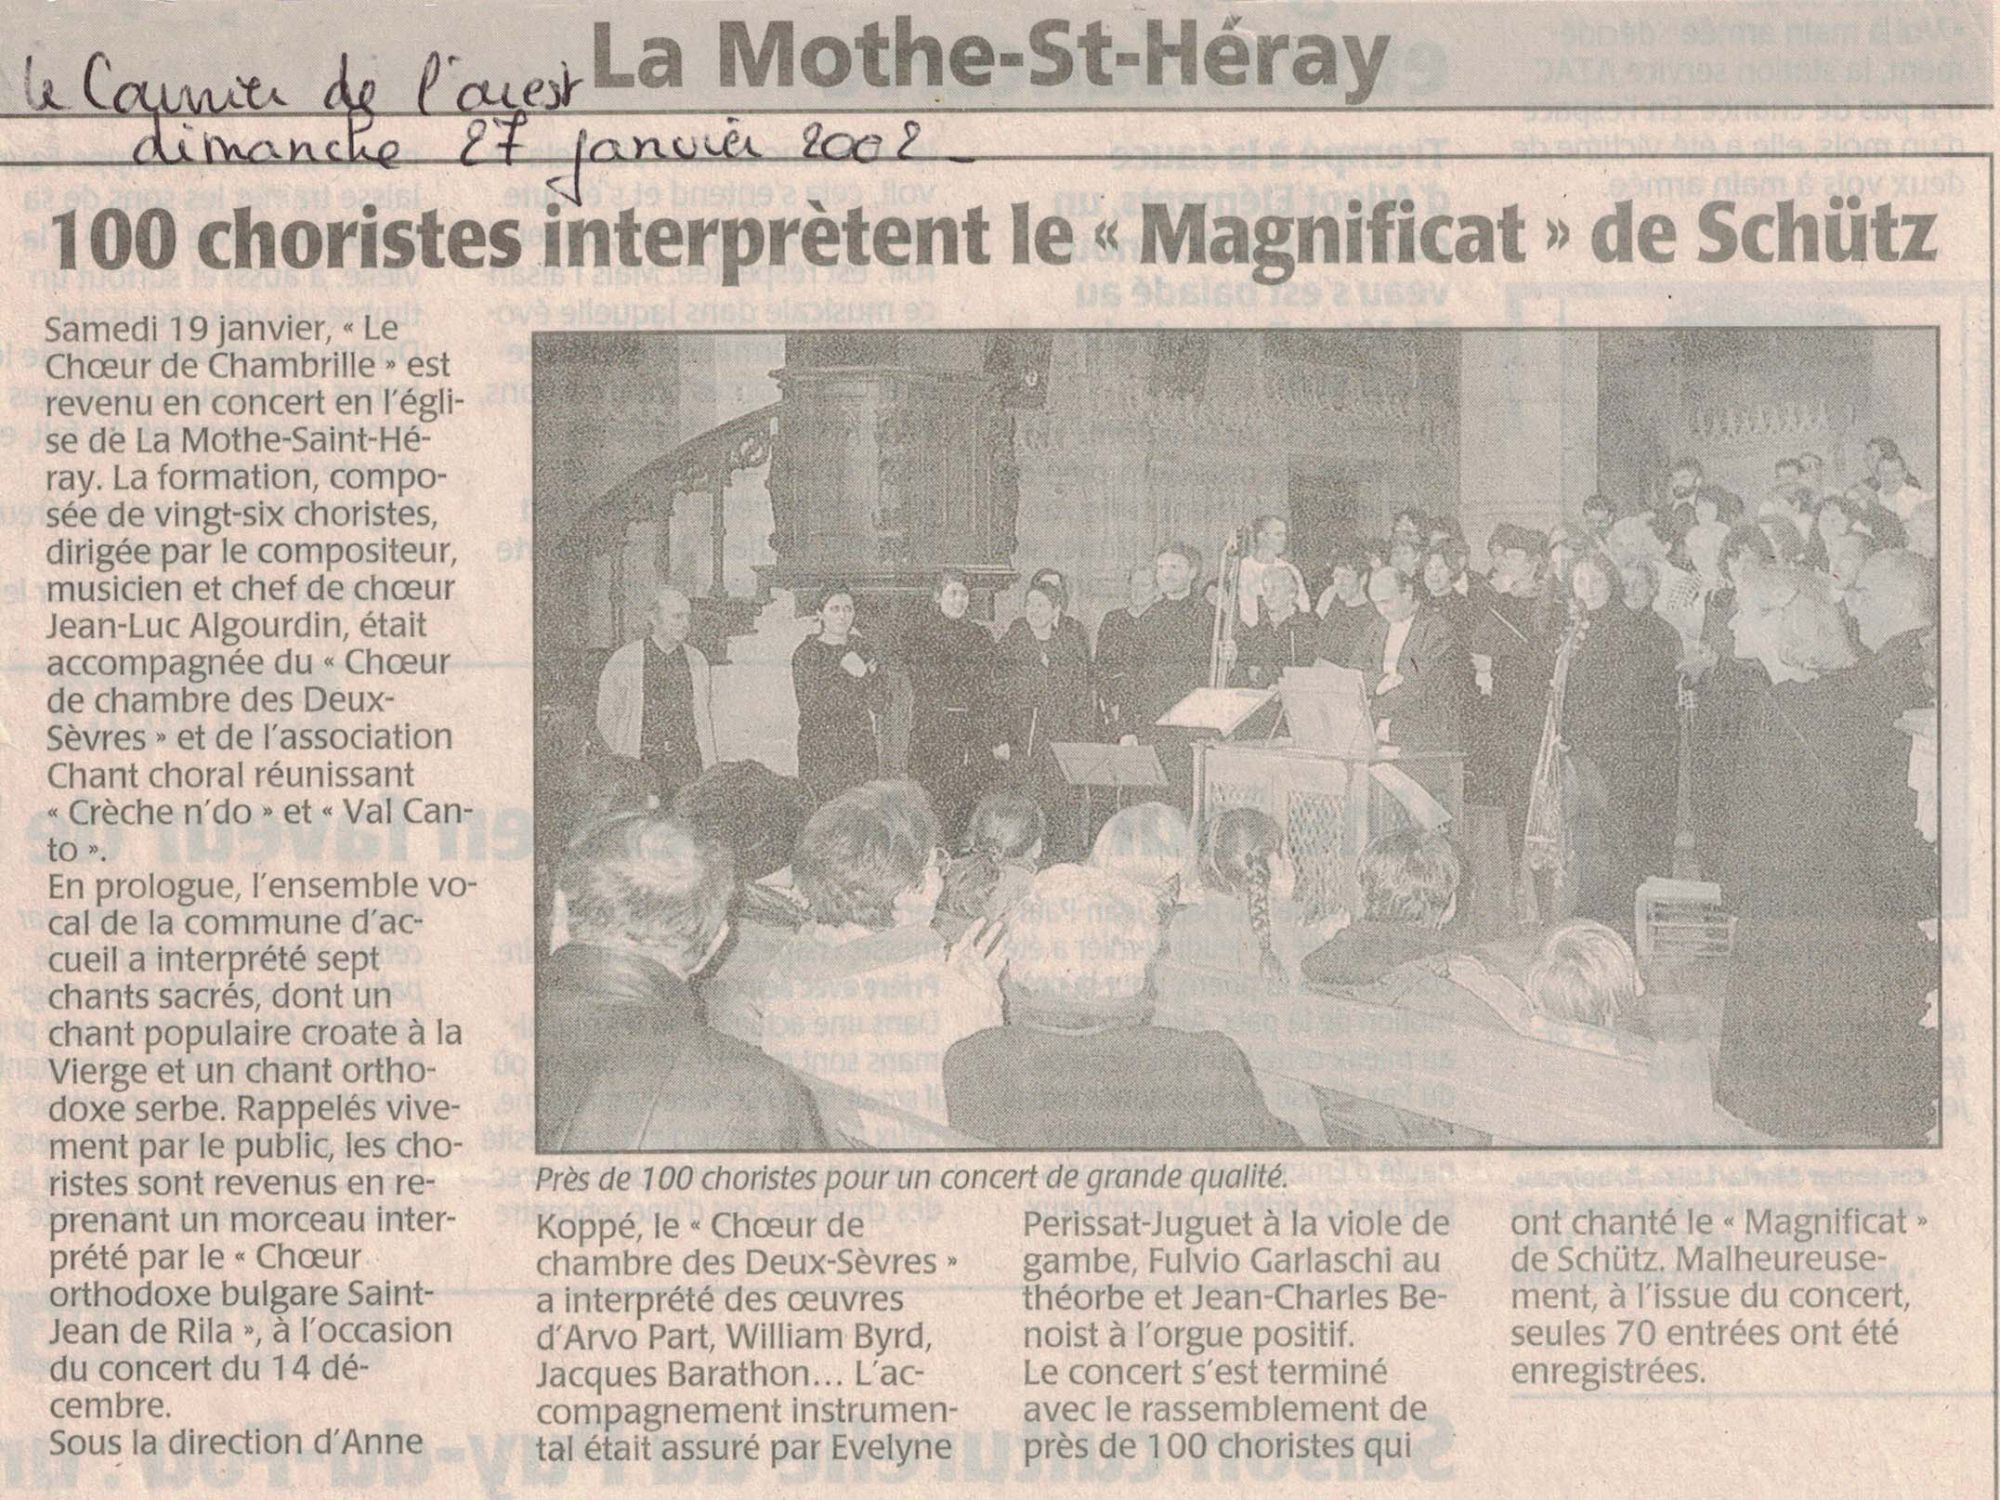 La Mothe St-Heray 1 2002